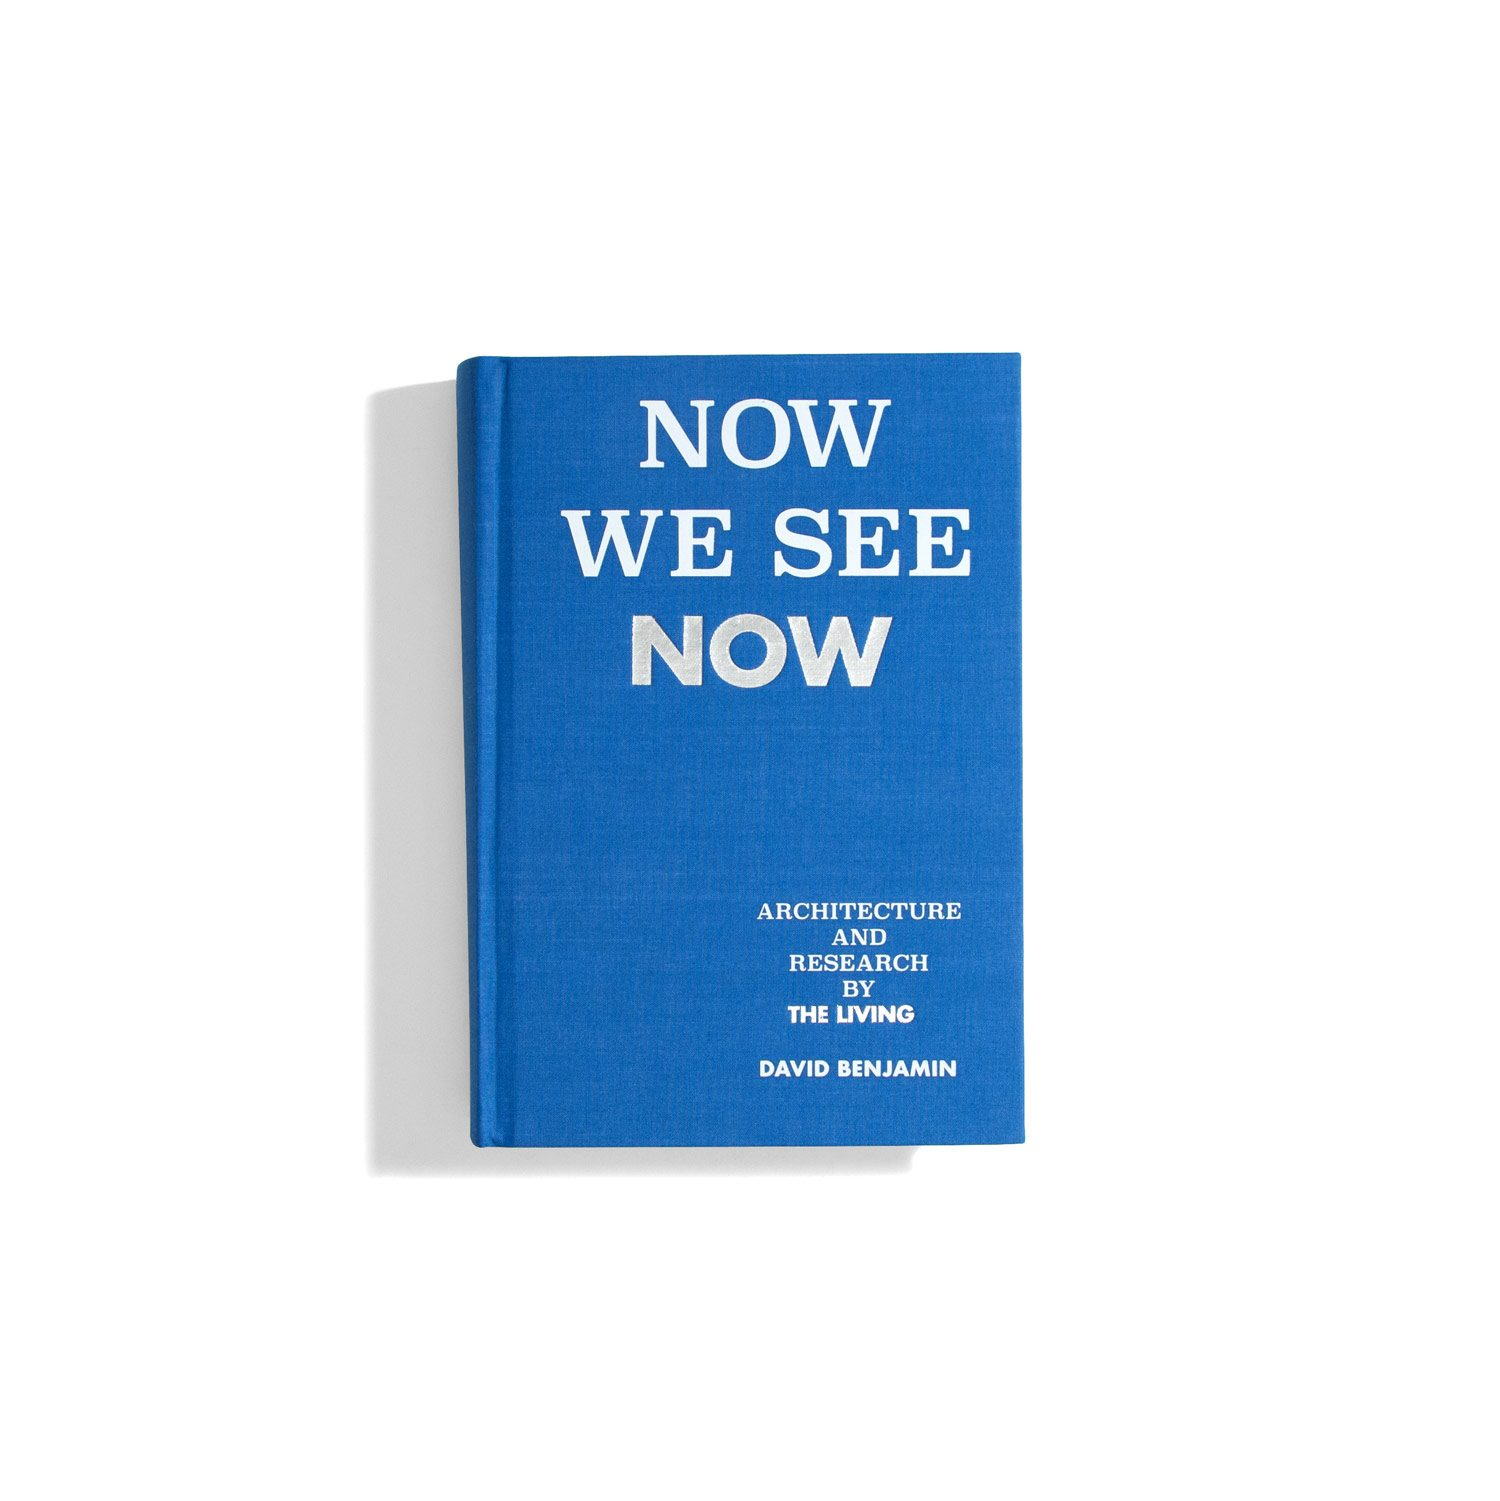 Now we see now - David Benjamin